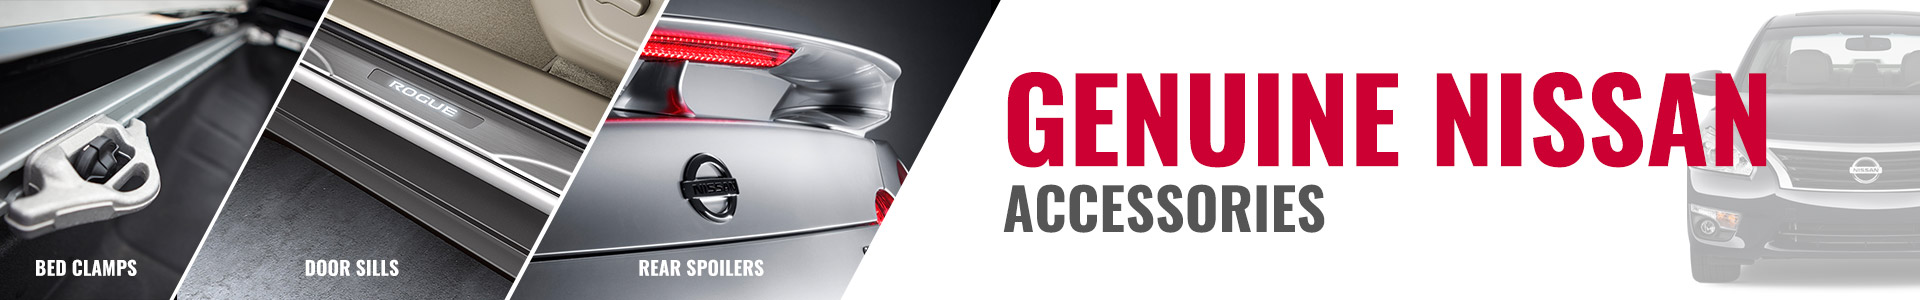 Genuine Nissan accessories